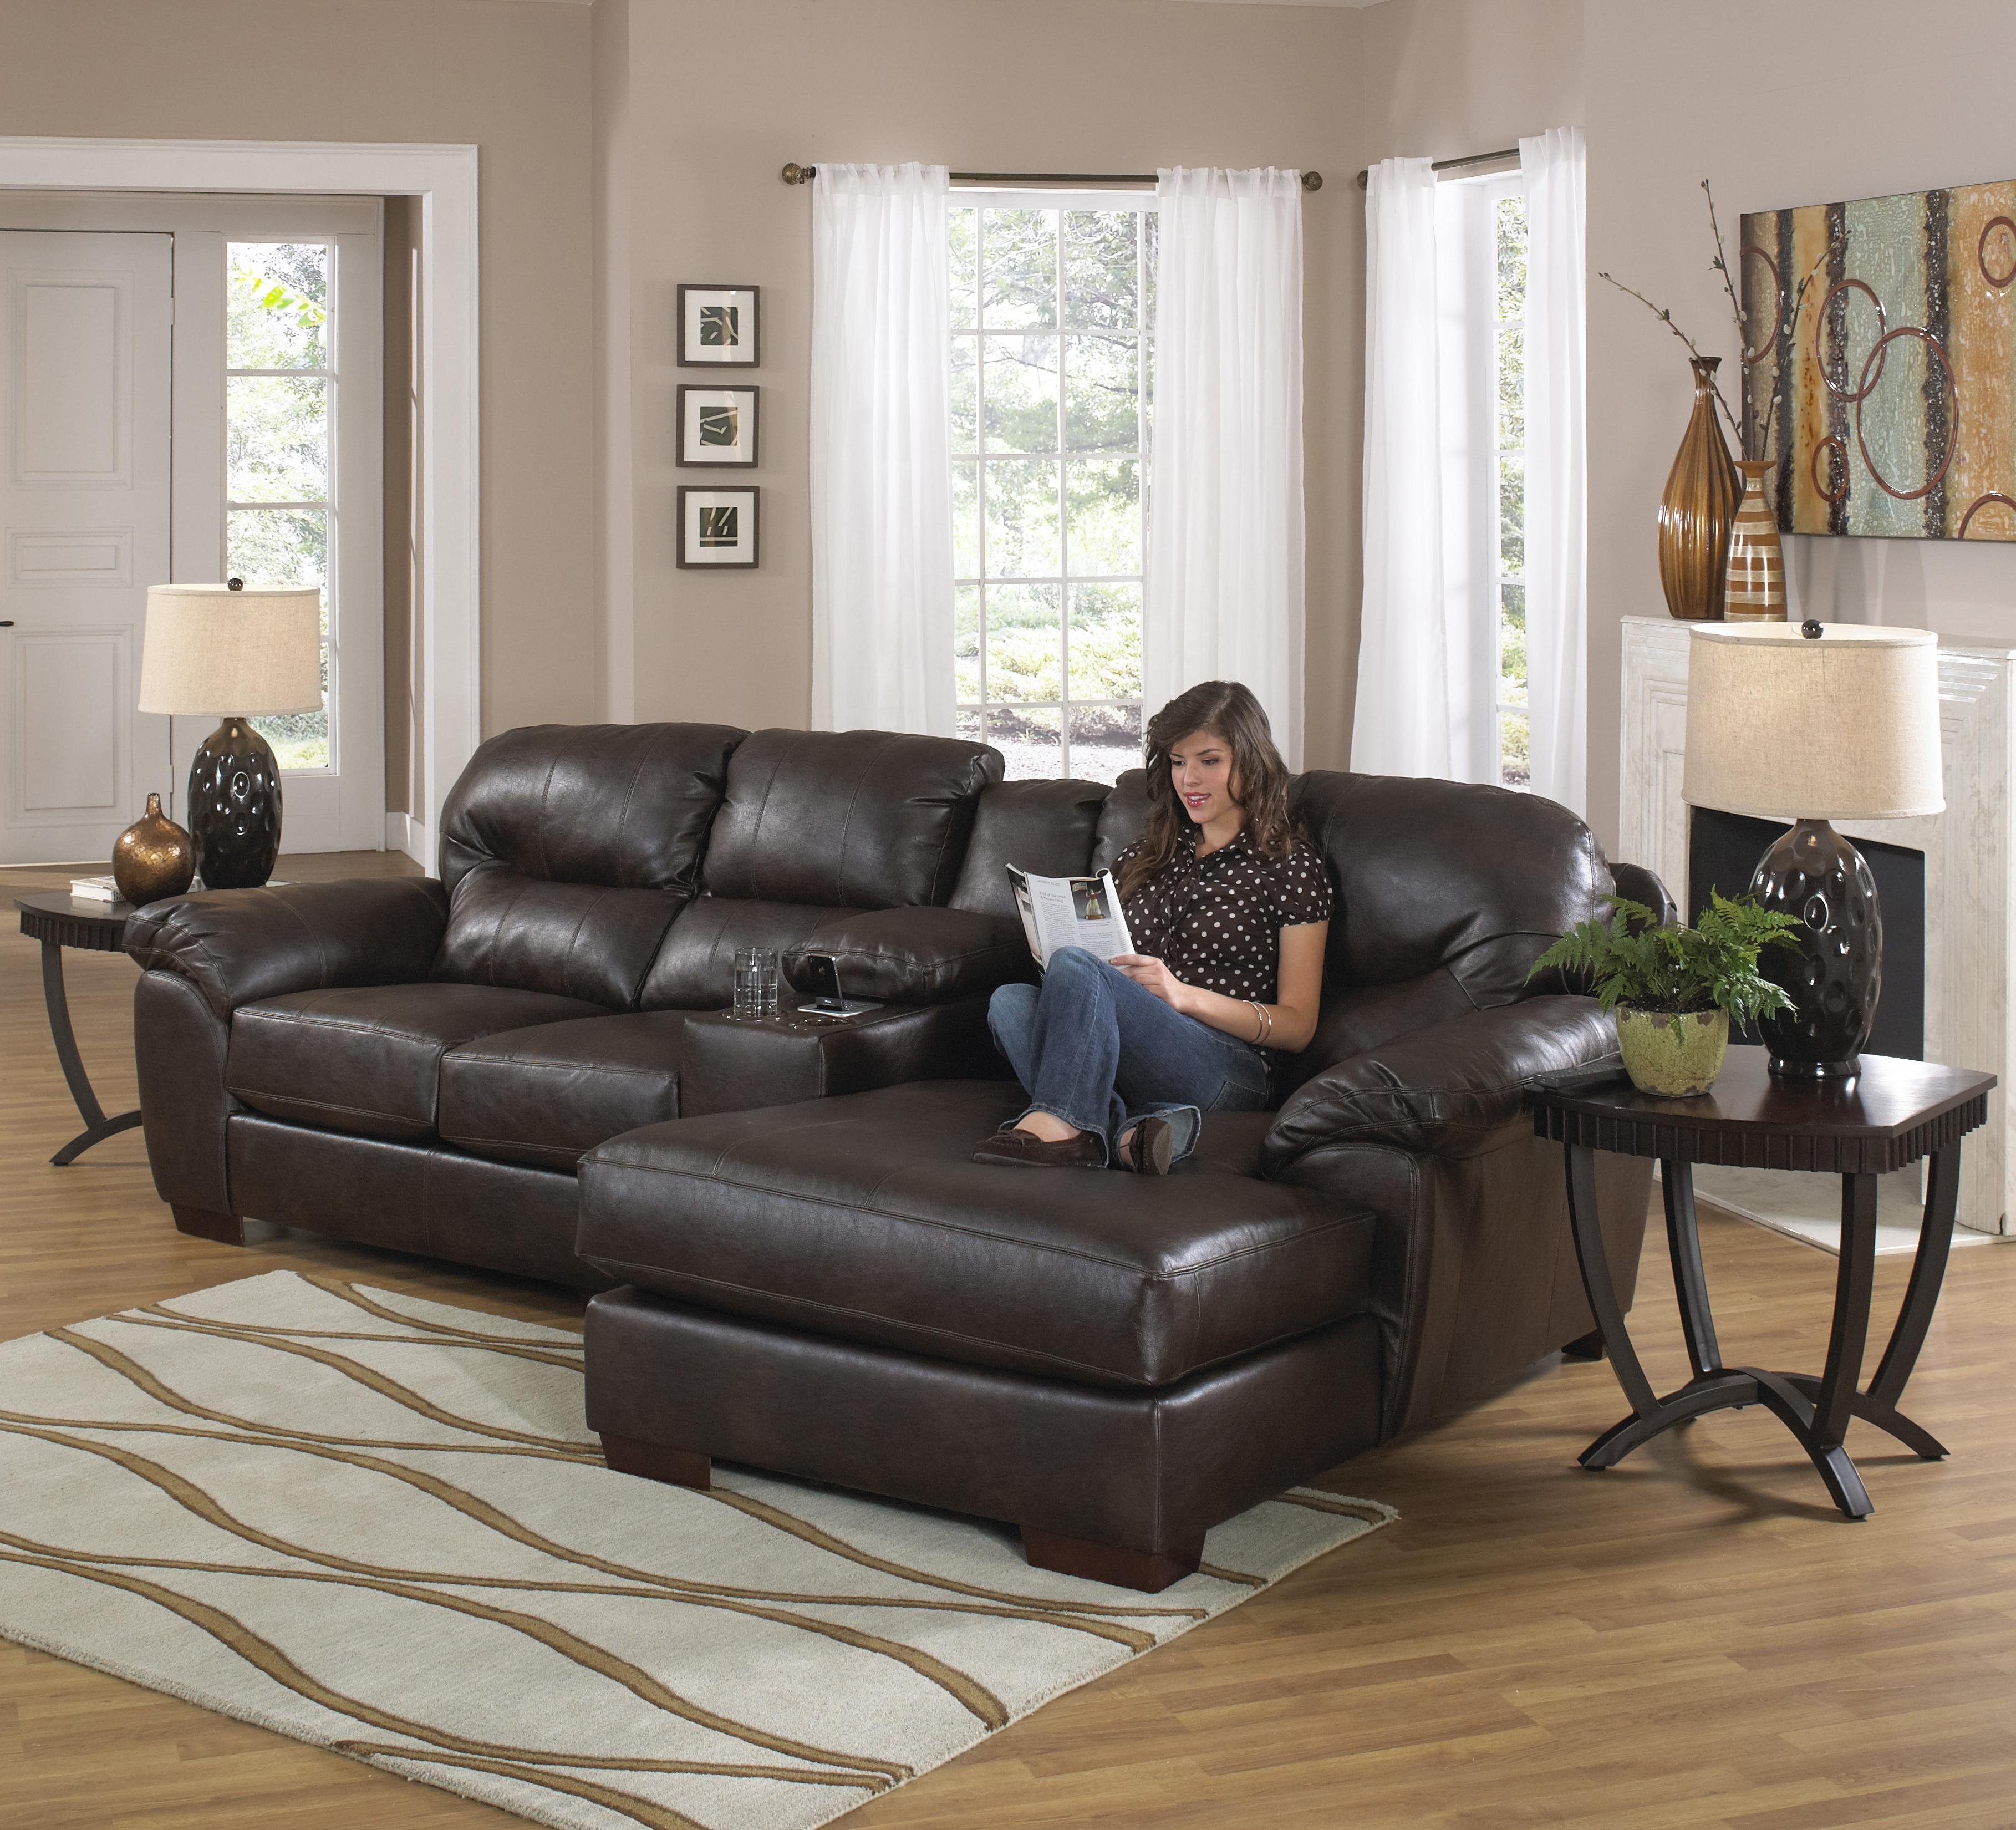 Jackson Furniture Lawson Two Chaise Sectional Sofa With Five Total Inside Jackson 6 Piece Power Reclining Sectionals With  Sleeper (Image 17 of 25)